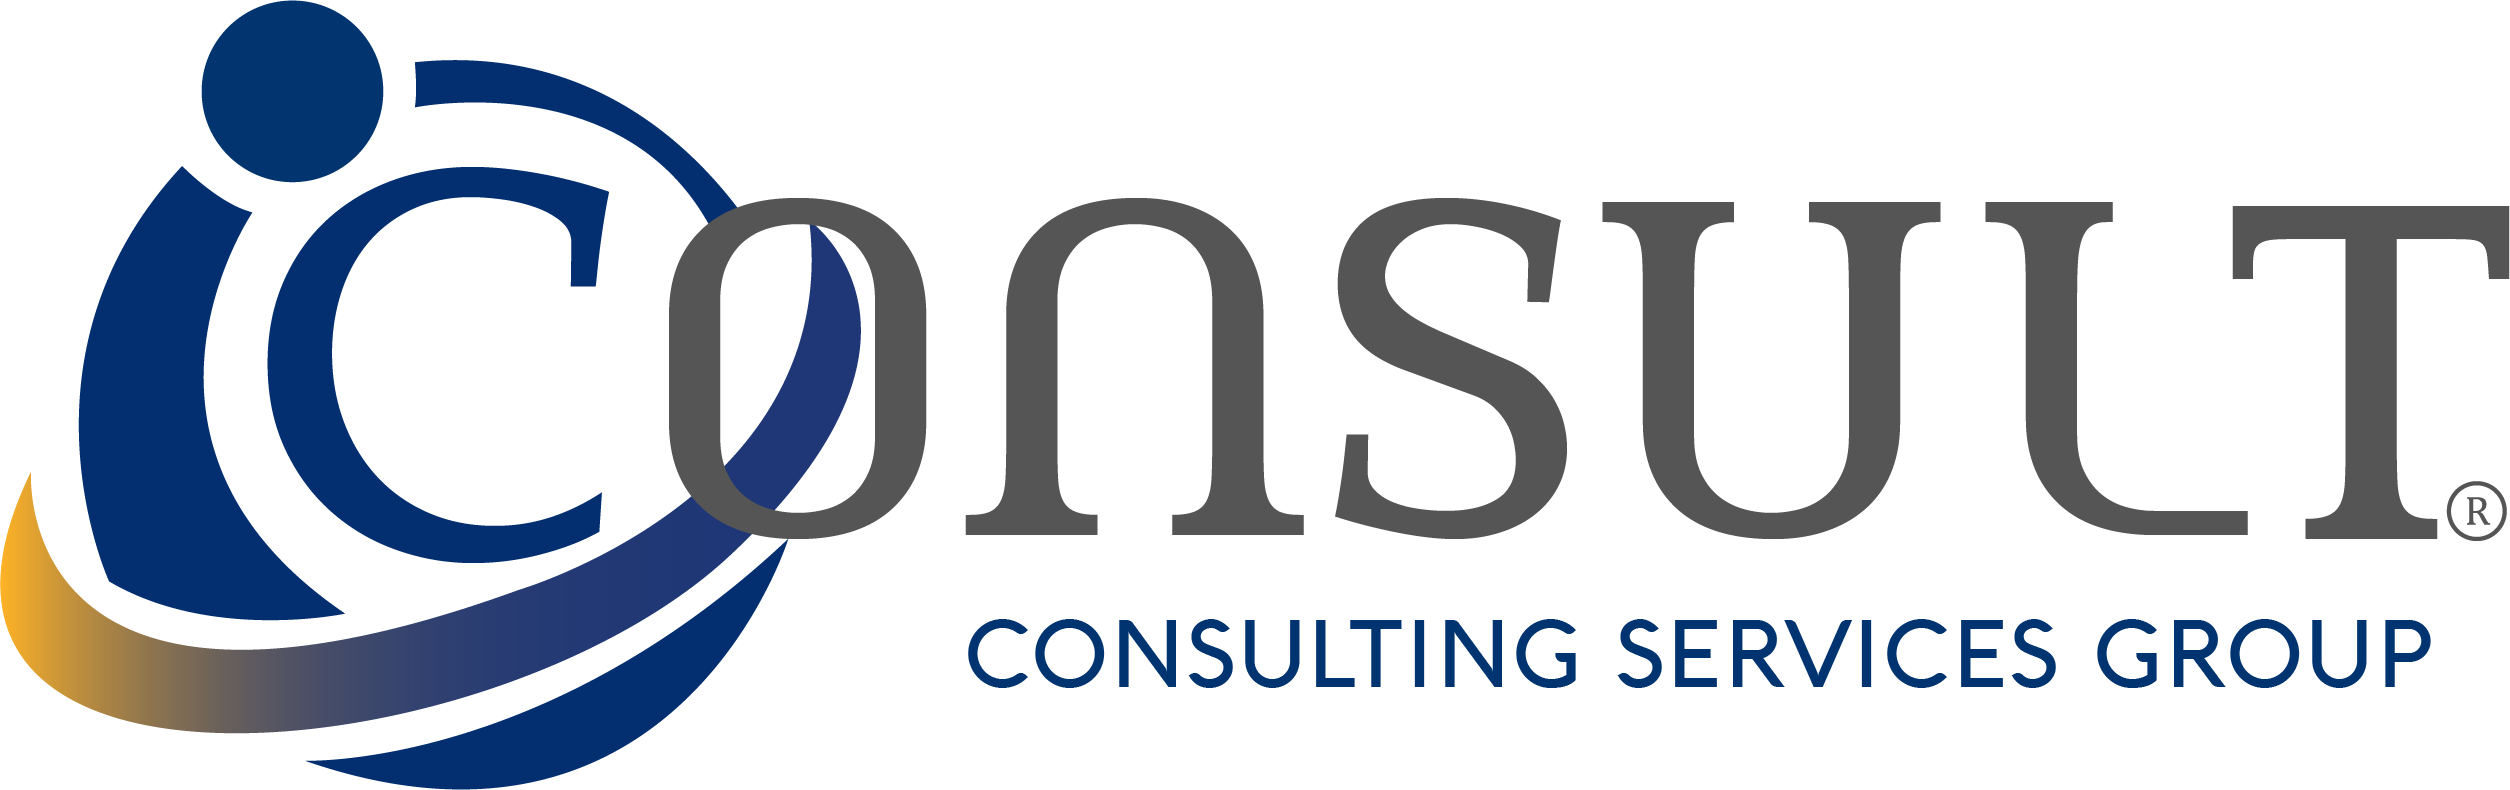 CONSULT - Consulting Services Group